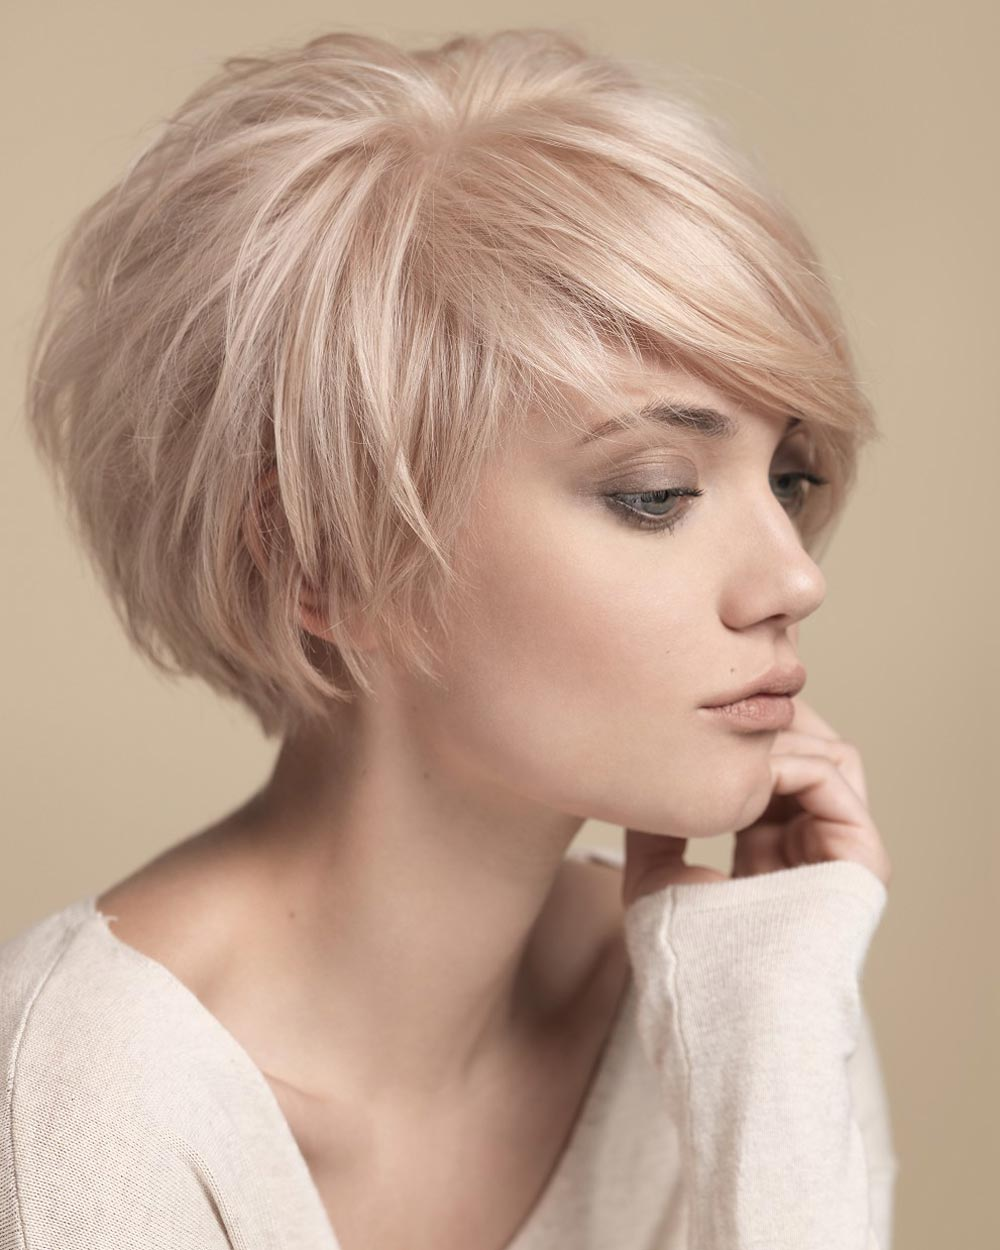 Short hair 2015 gallery of hairstyles for fall winter